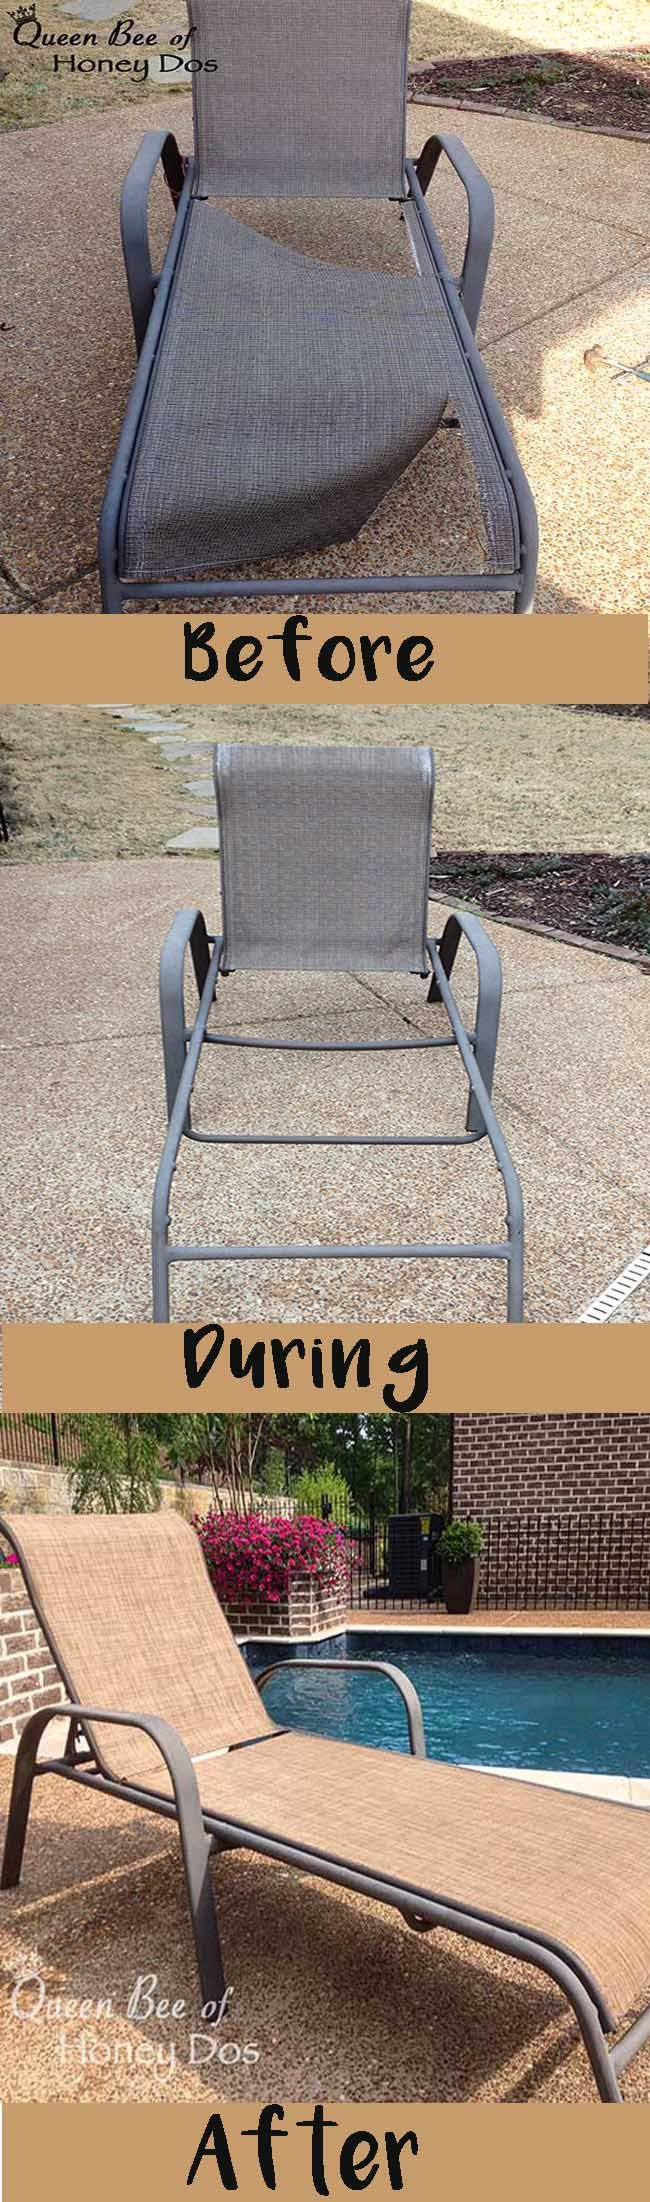 Bentwood rocking chair repair - How To Repair Sling Chairs Chaises